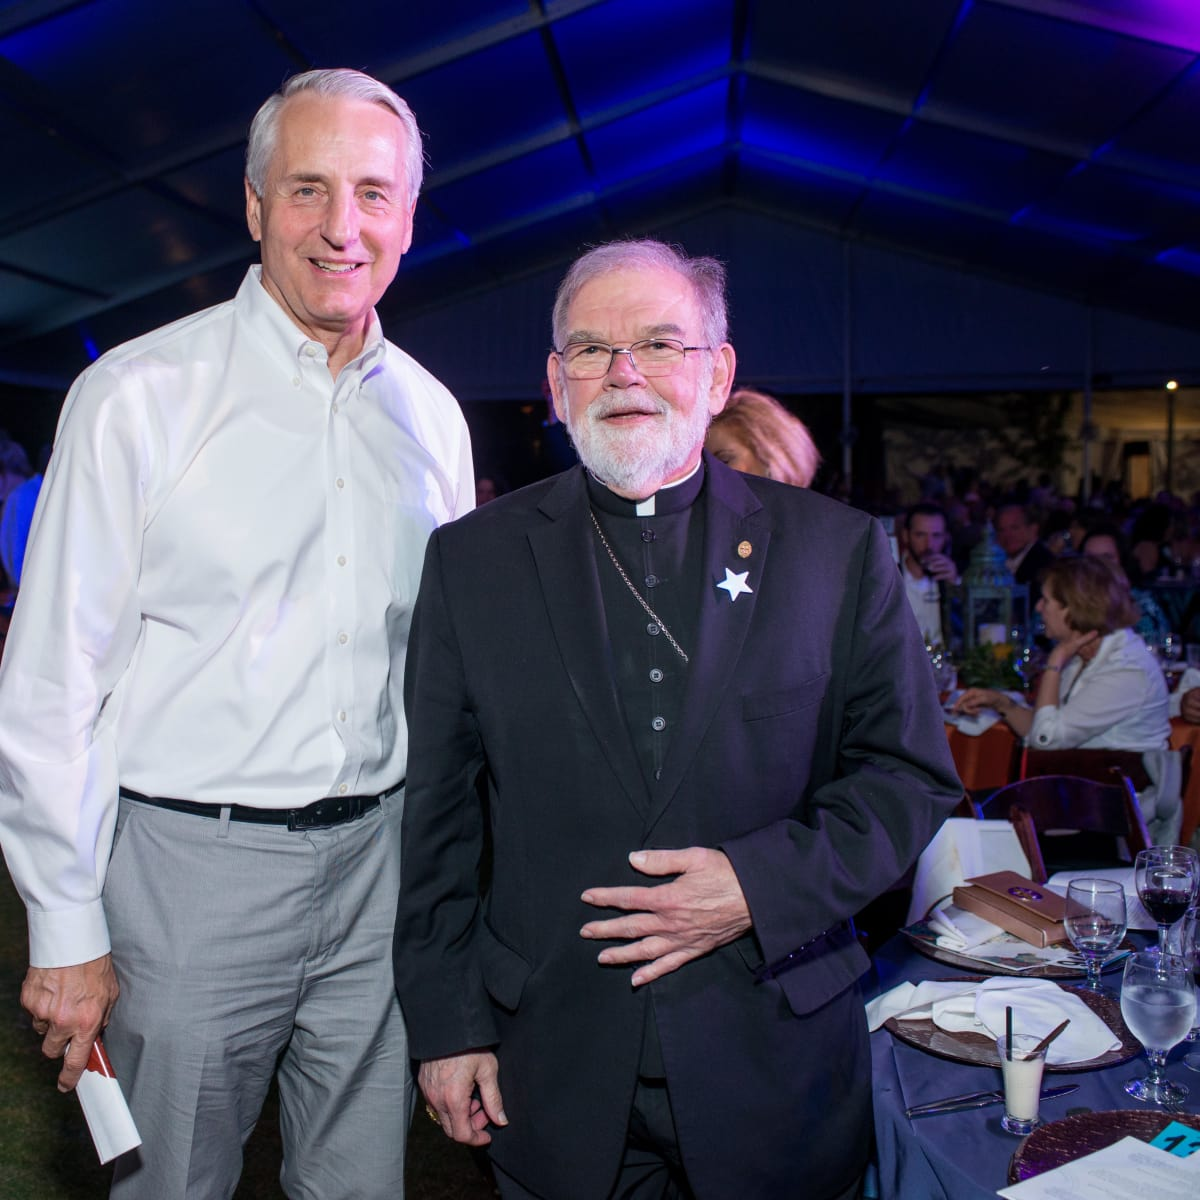 Catholic Charities Gala 5/16 Bob Ivany, Auxiliary Bishop Sheltz